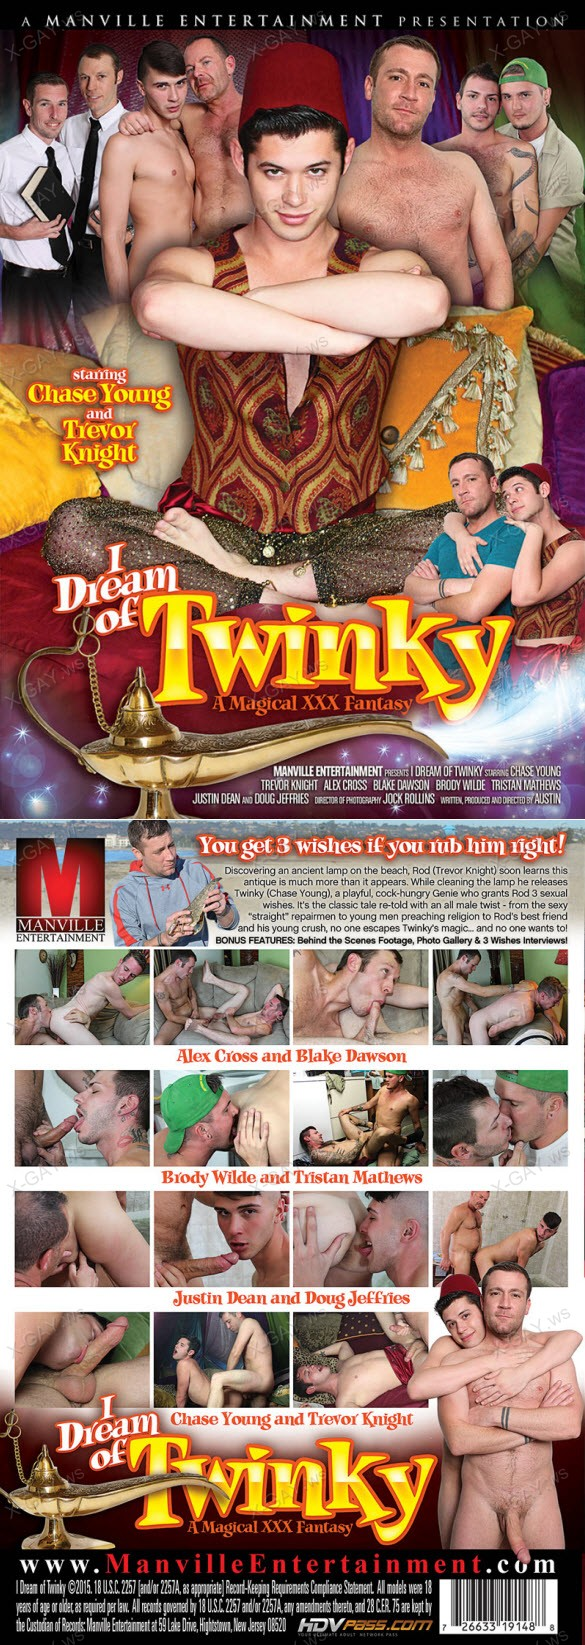 manvilleentertainment_idreamoftwinky2015.jpg